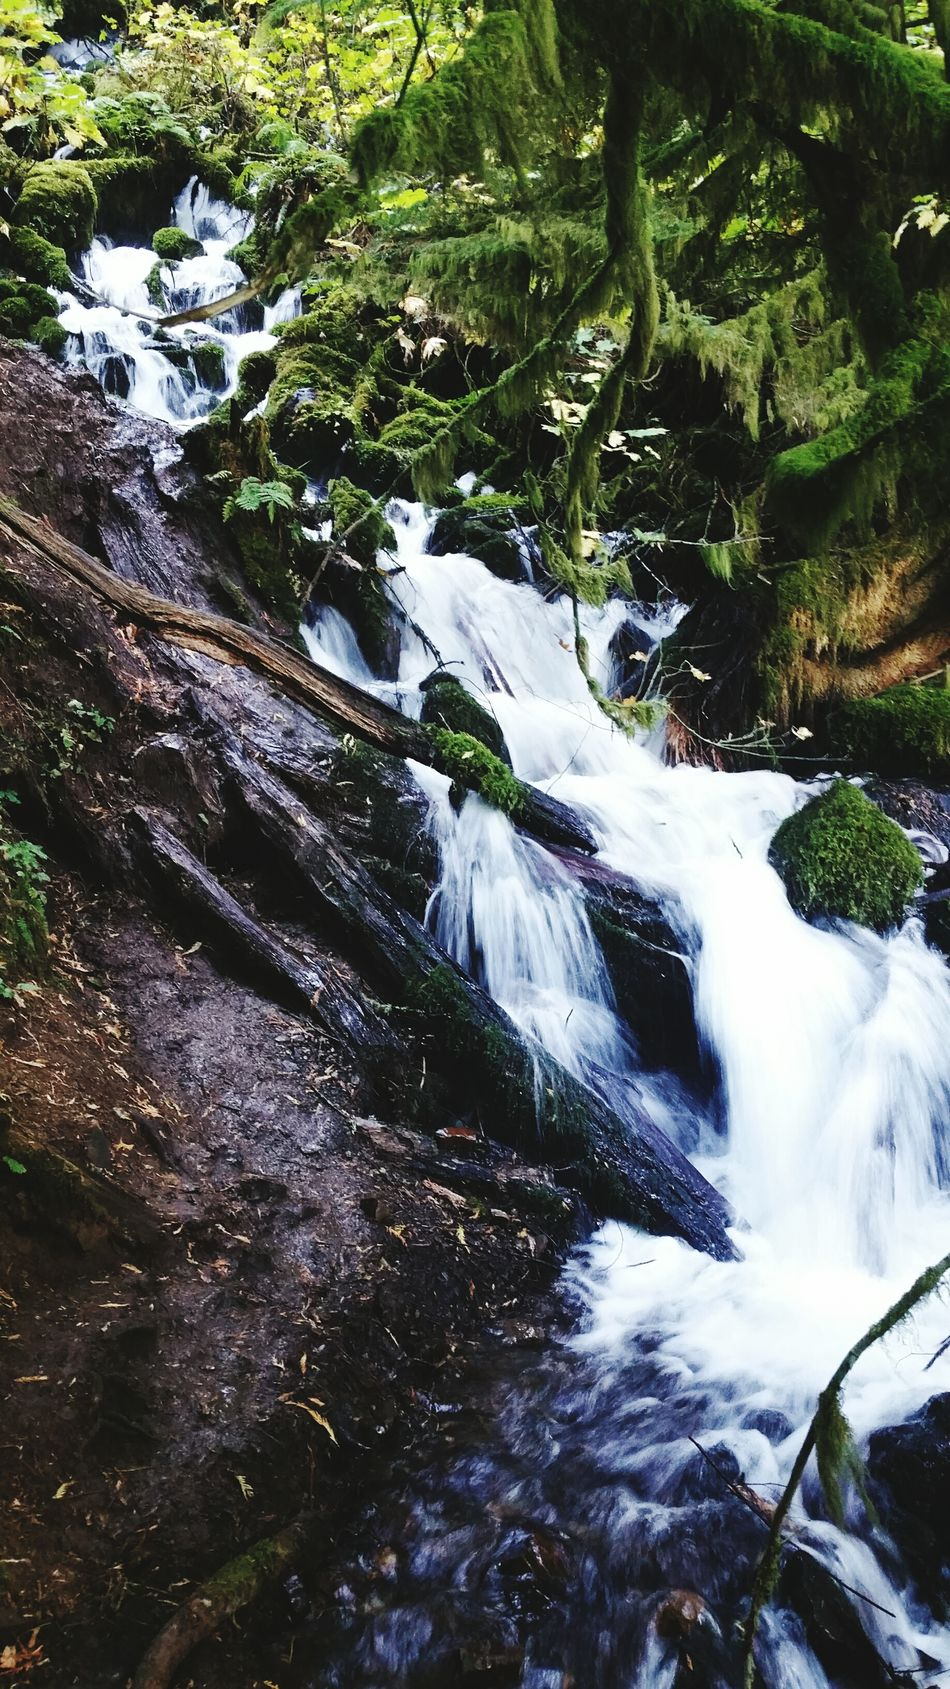 Waterfall Nature Multnomah Oregon Pacific Northwest  Hiking Fairytale  HCII Photos Forest